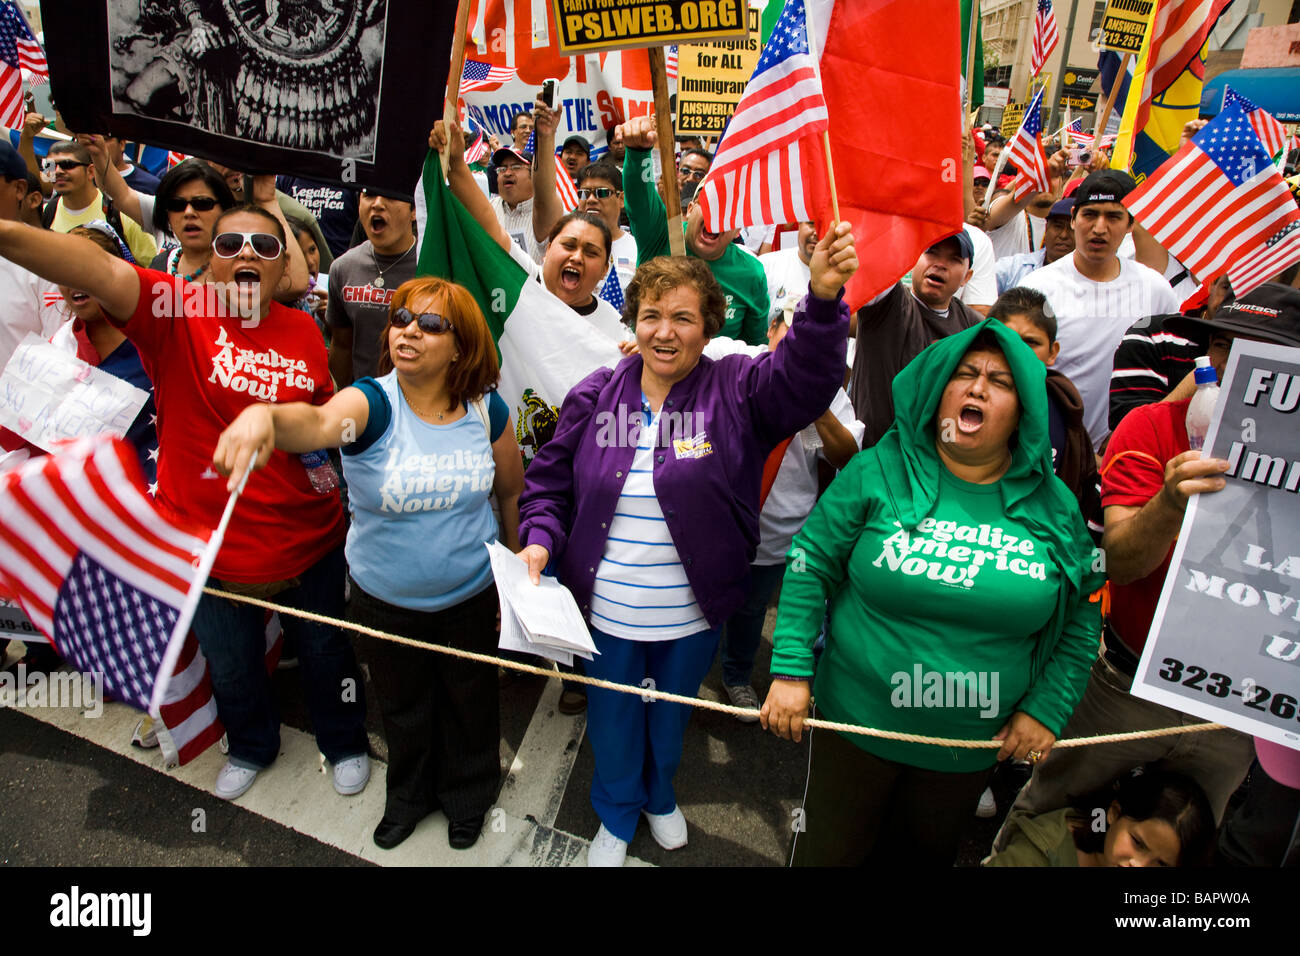 May Day Protest 5-1-2009 at Olympic Blvd and Broadway downtown Los Angeles California United States of America - Stock Image